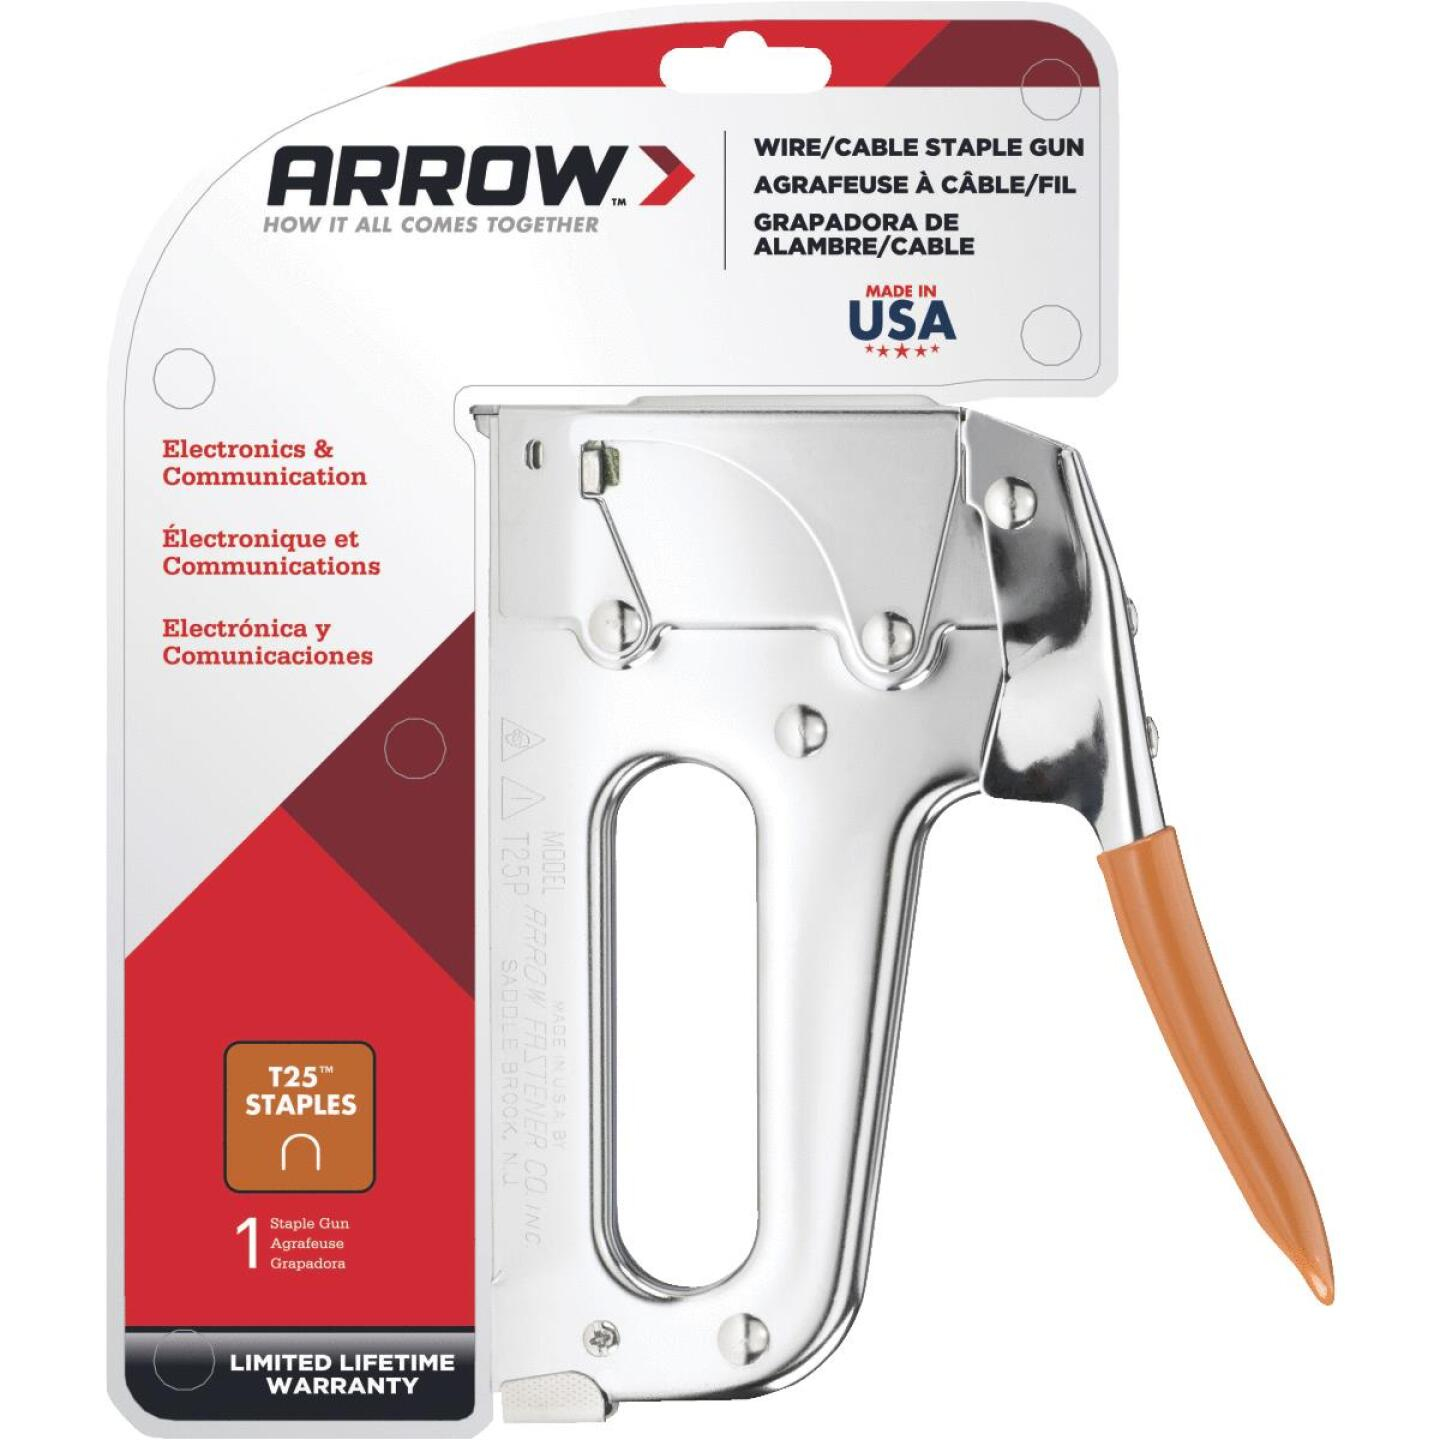 Arrow T25 Heavy-Duty Wire and Cable Staple Gun Image 1